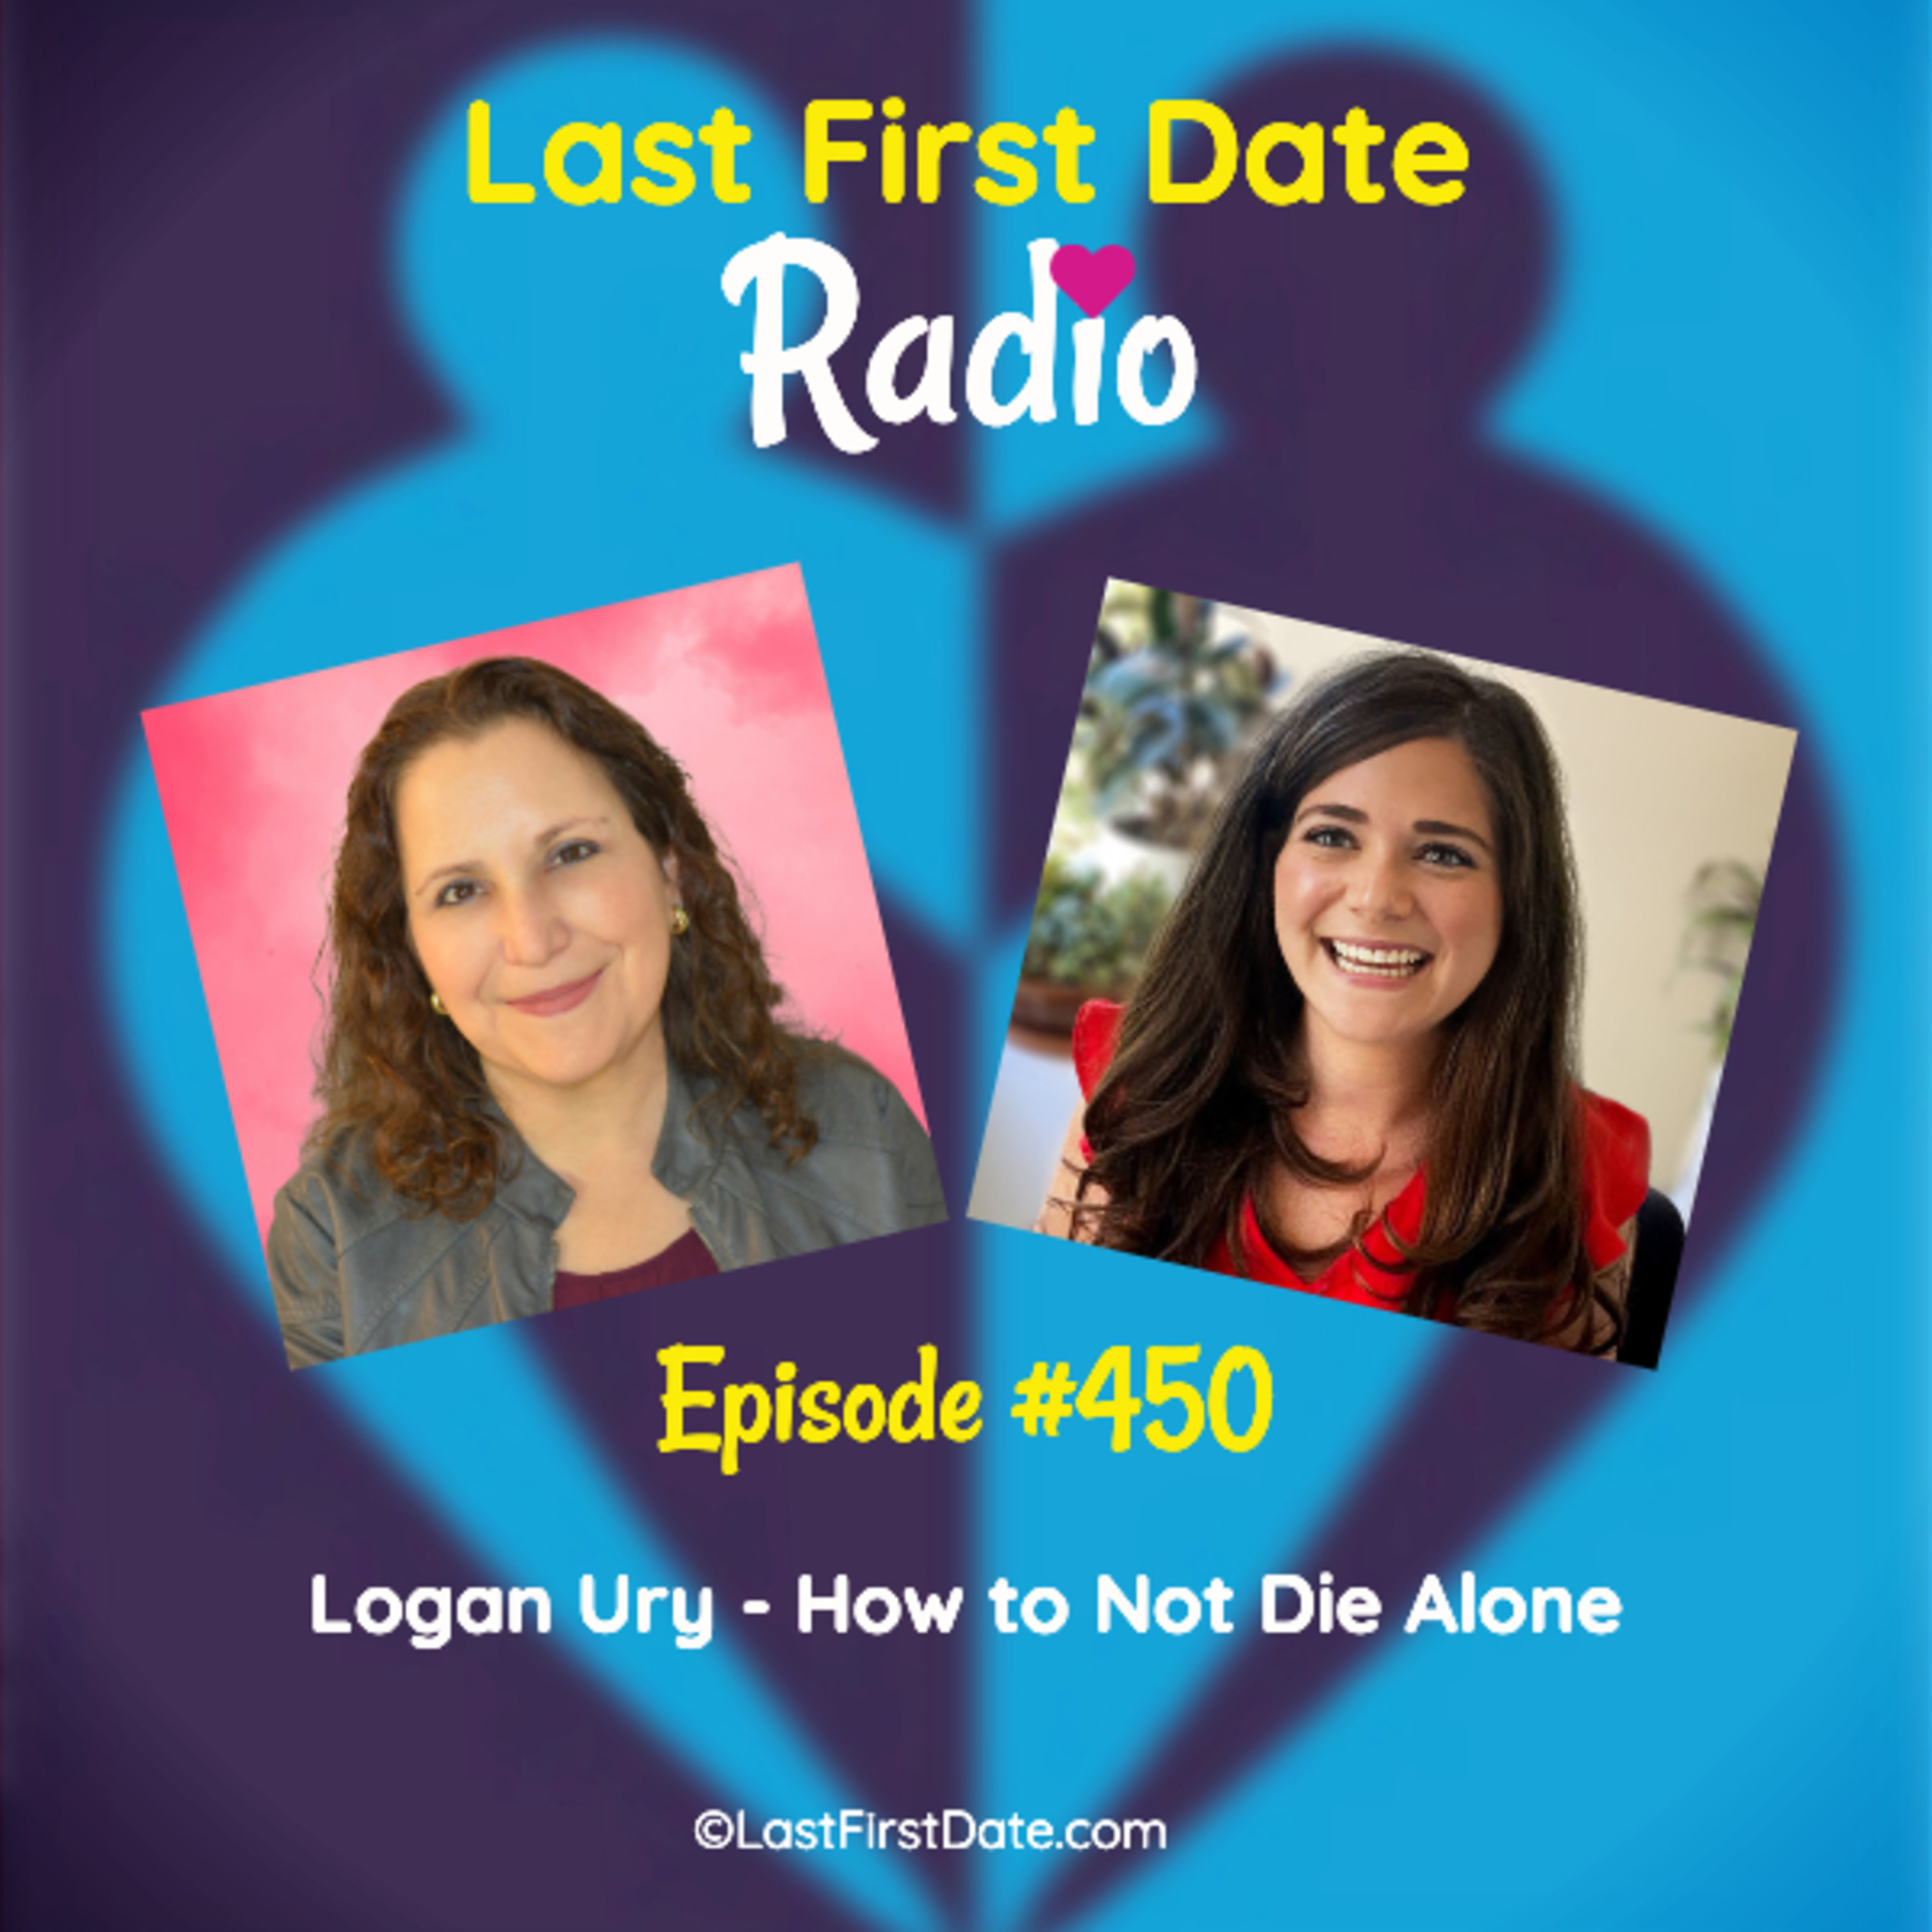 Last First Date Radio - EP 450: Logan Ury - How to Not Die Alone